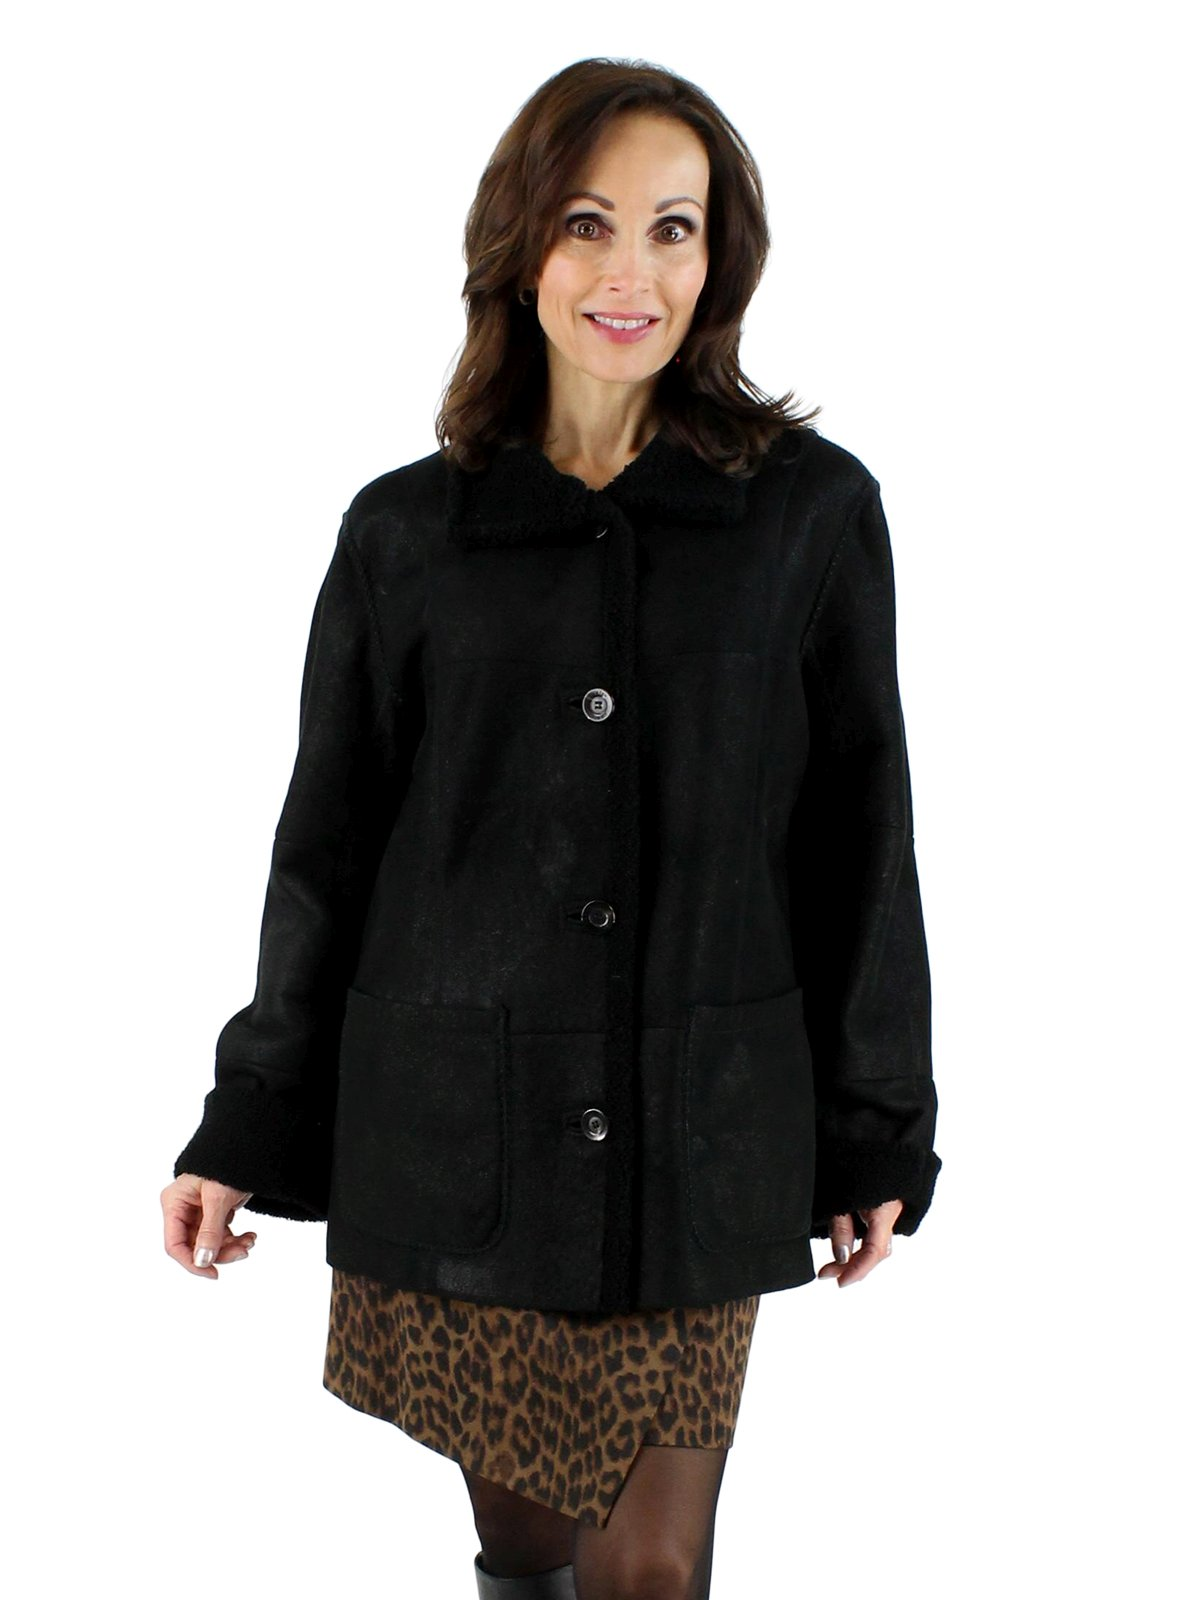 Reversible Shearling Lamb Fur Jacket Women S Medium